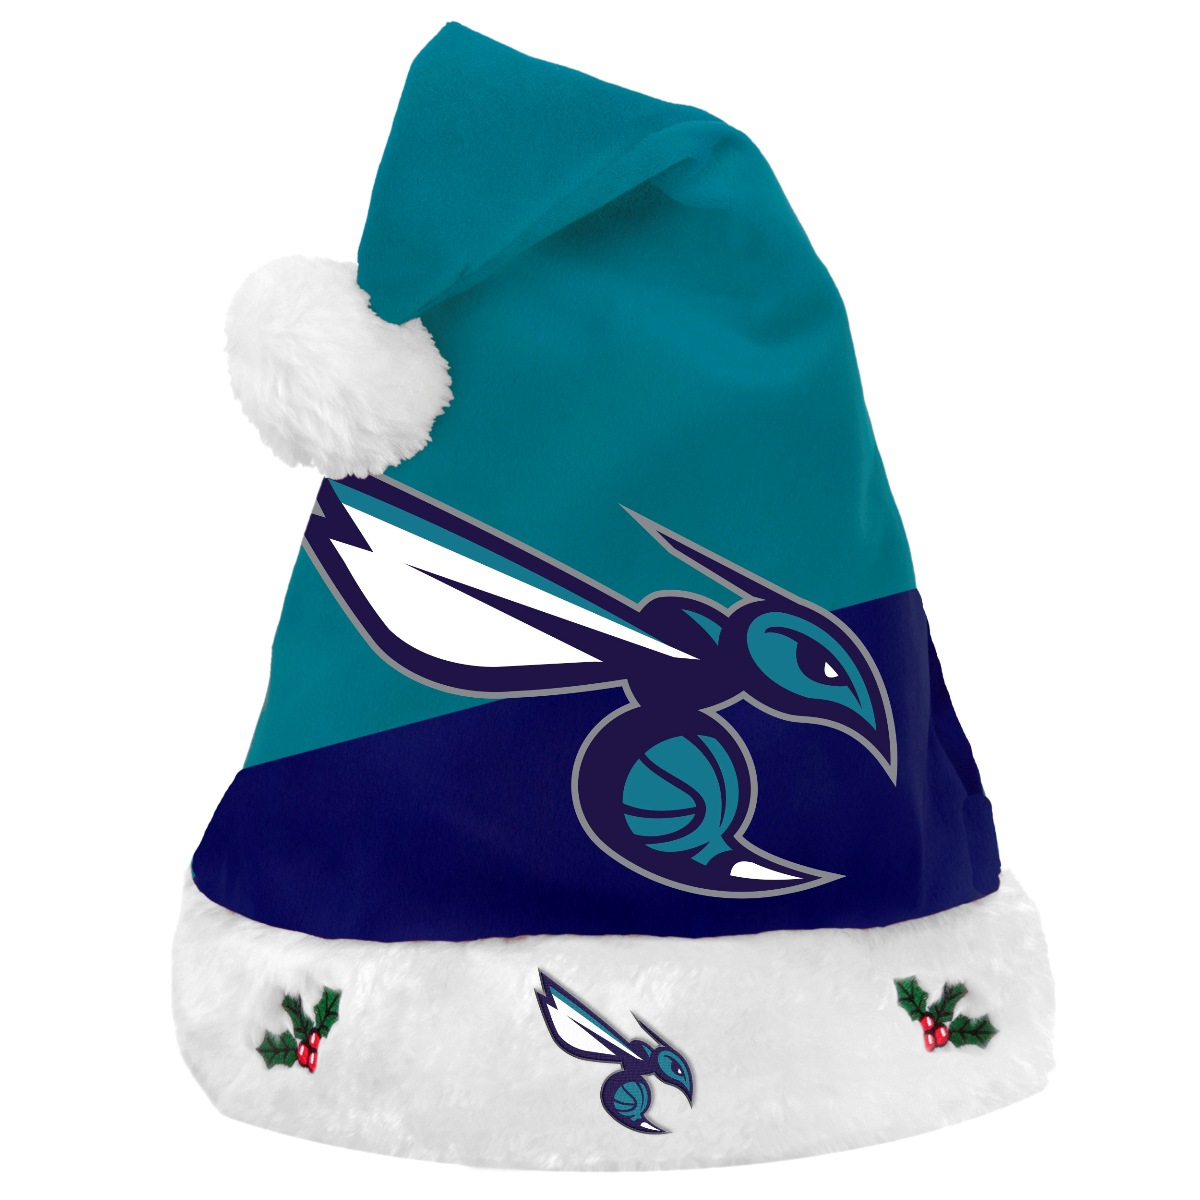 Charlotte Hornets 2018 NBA Basic Logo Plush Christmas Santa Hat